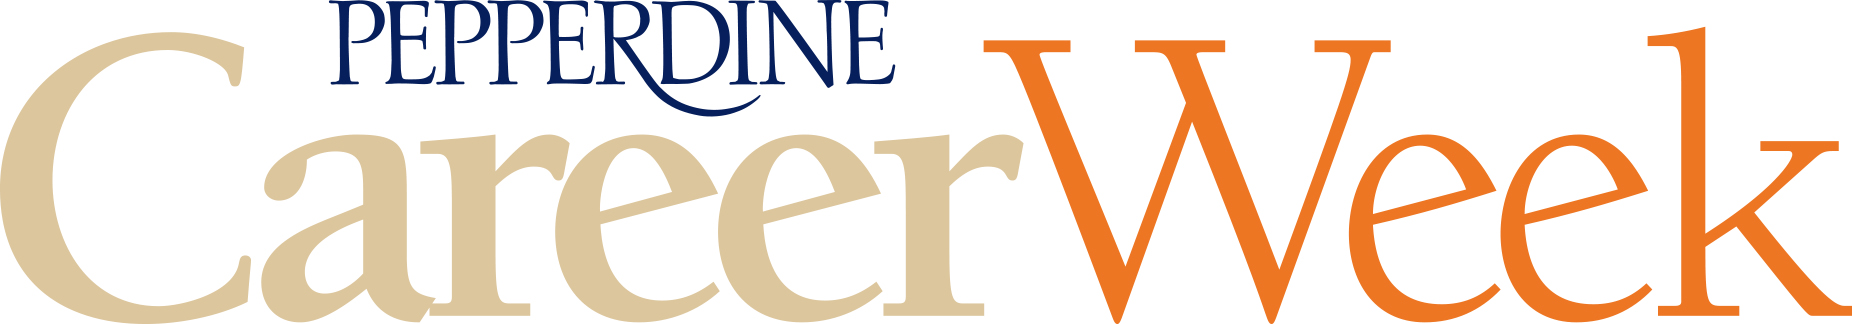 Career Week wordmark - Pepperdine University